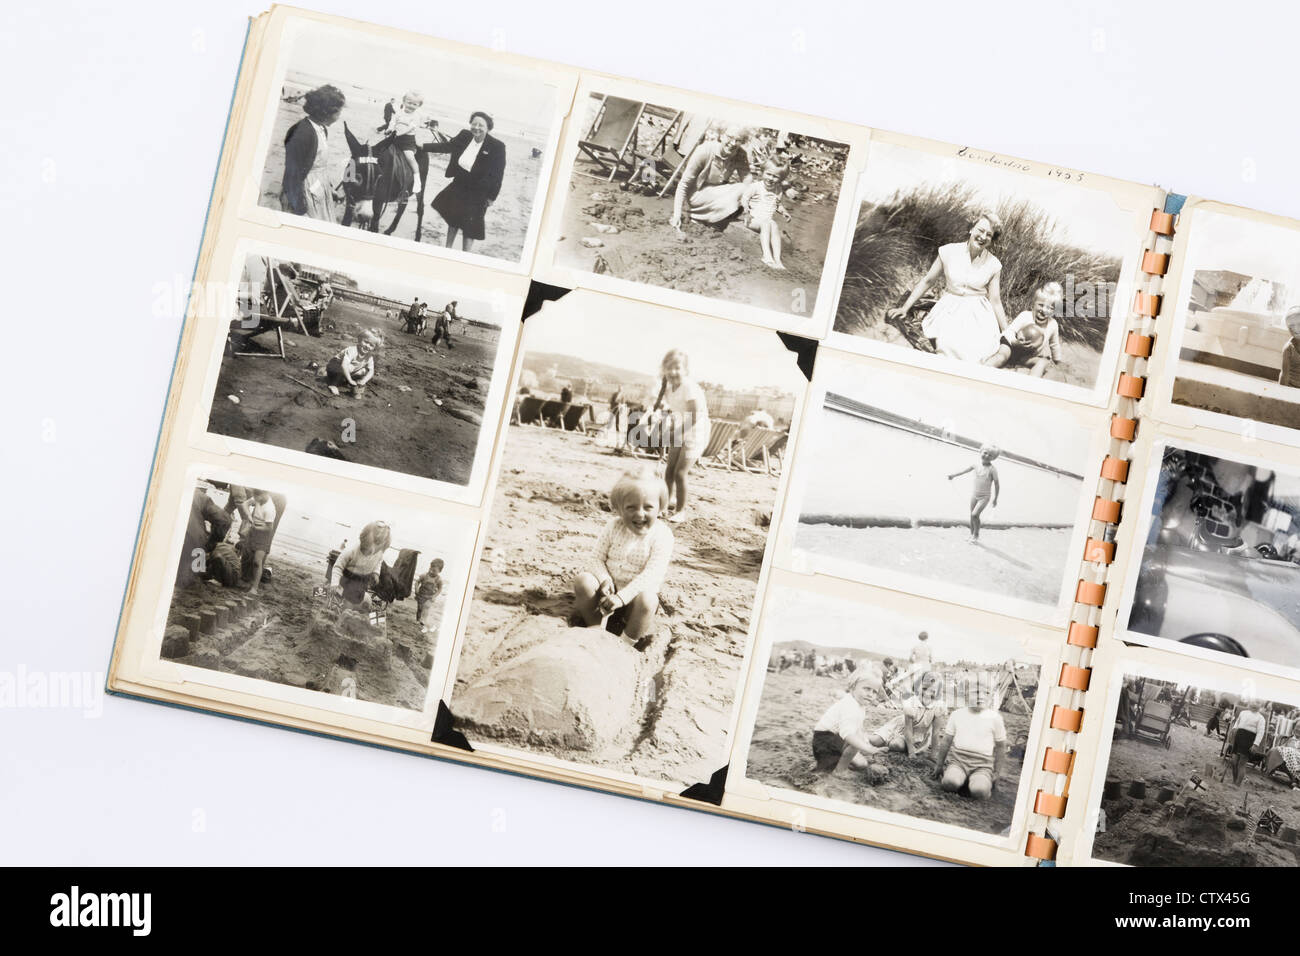 Old faded black and white printed photographs in a family photograph photo album from 1950s era with page showing - Stock Image